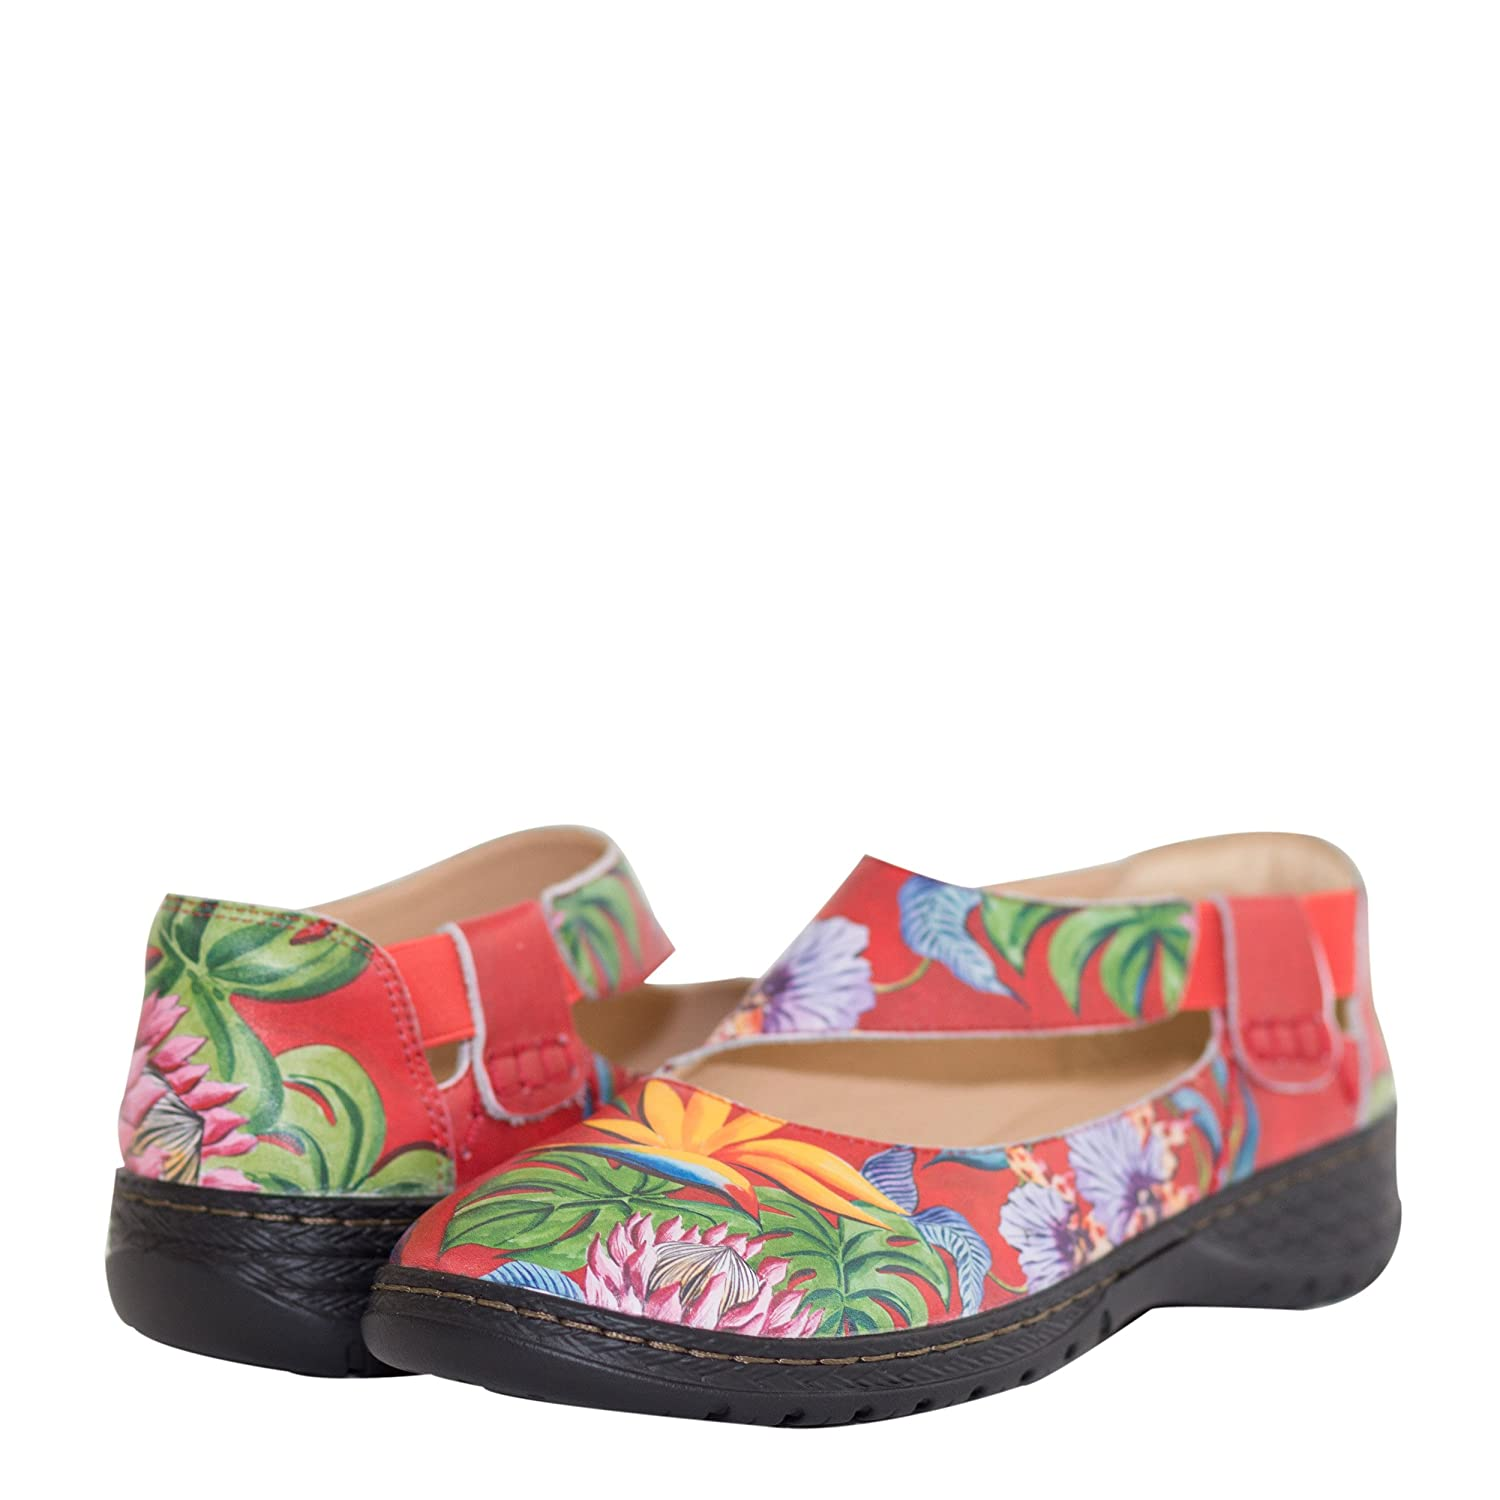 Anuschka Women's Mita Printed Leather Mary Jane,Lovely Leaves B07DB7W8BD 9 B(M) US|Island Escape